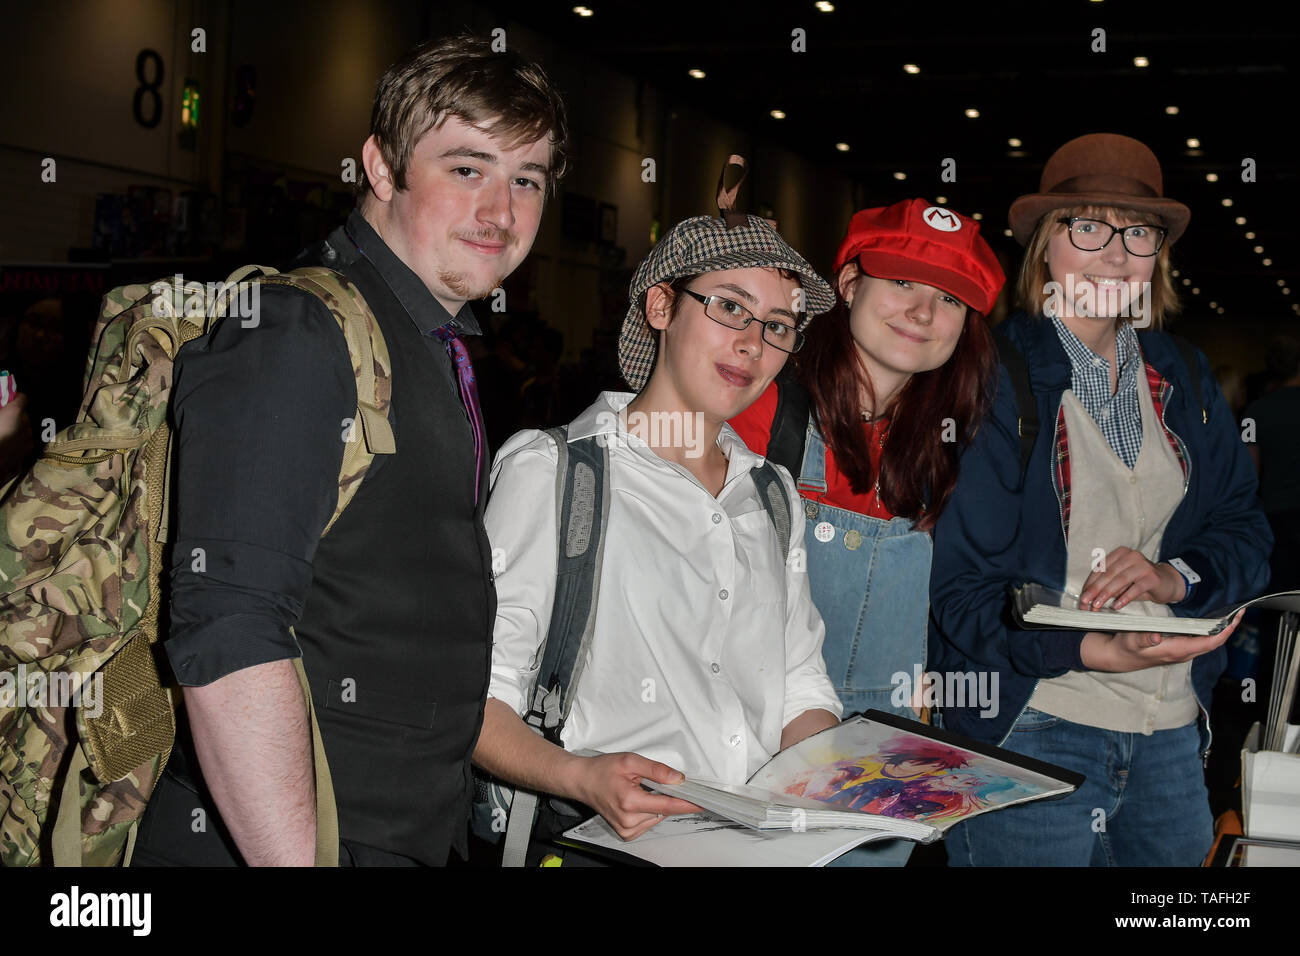 Comic fans looking at a stall GuiZang (www.guizang.co.uk) by artist Qing Qi at MCM Comic Con London on May 24, 2019. Credit: Picture Capital/Alamy Live News Stock Photo